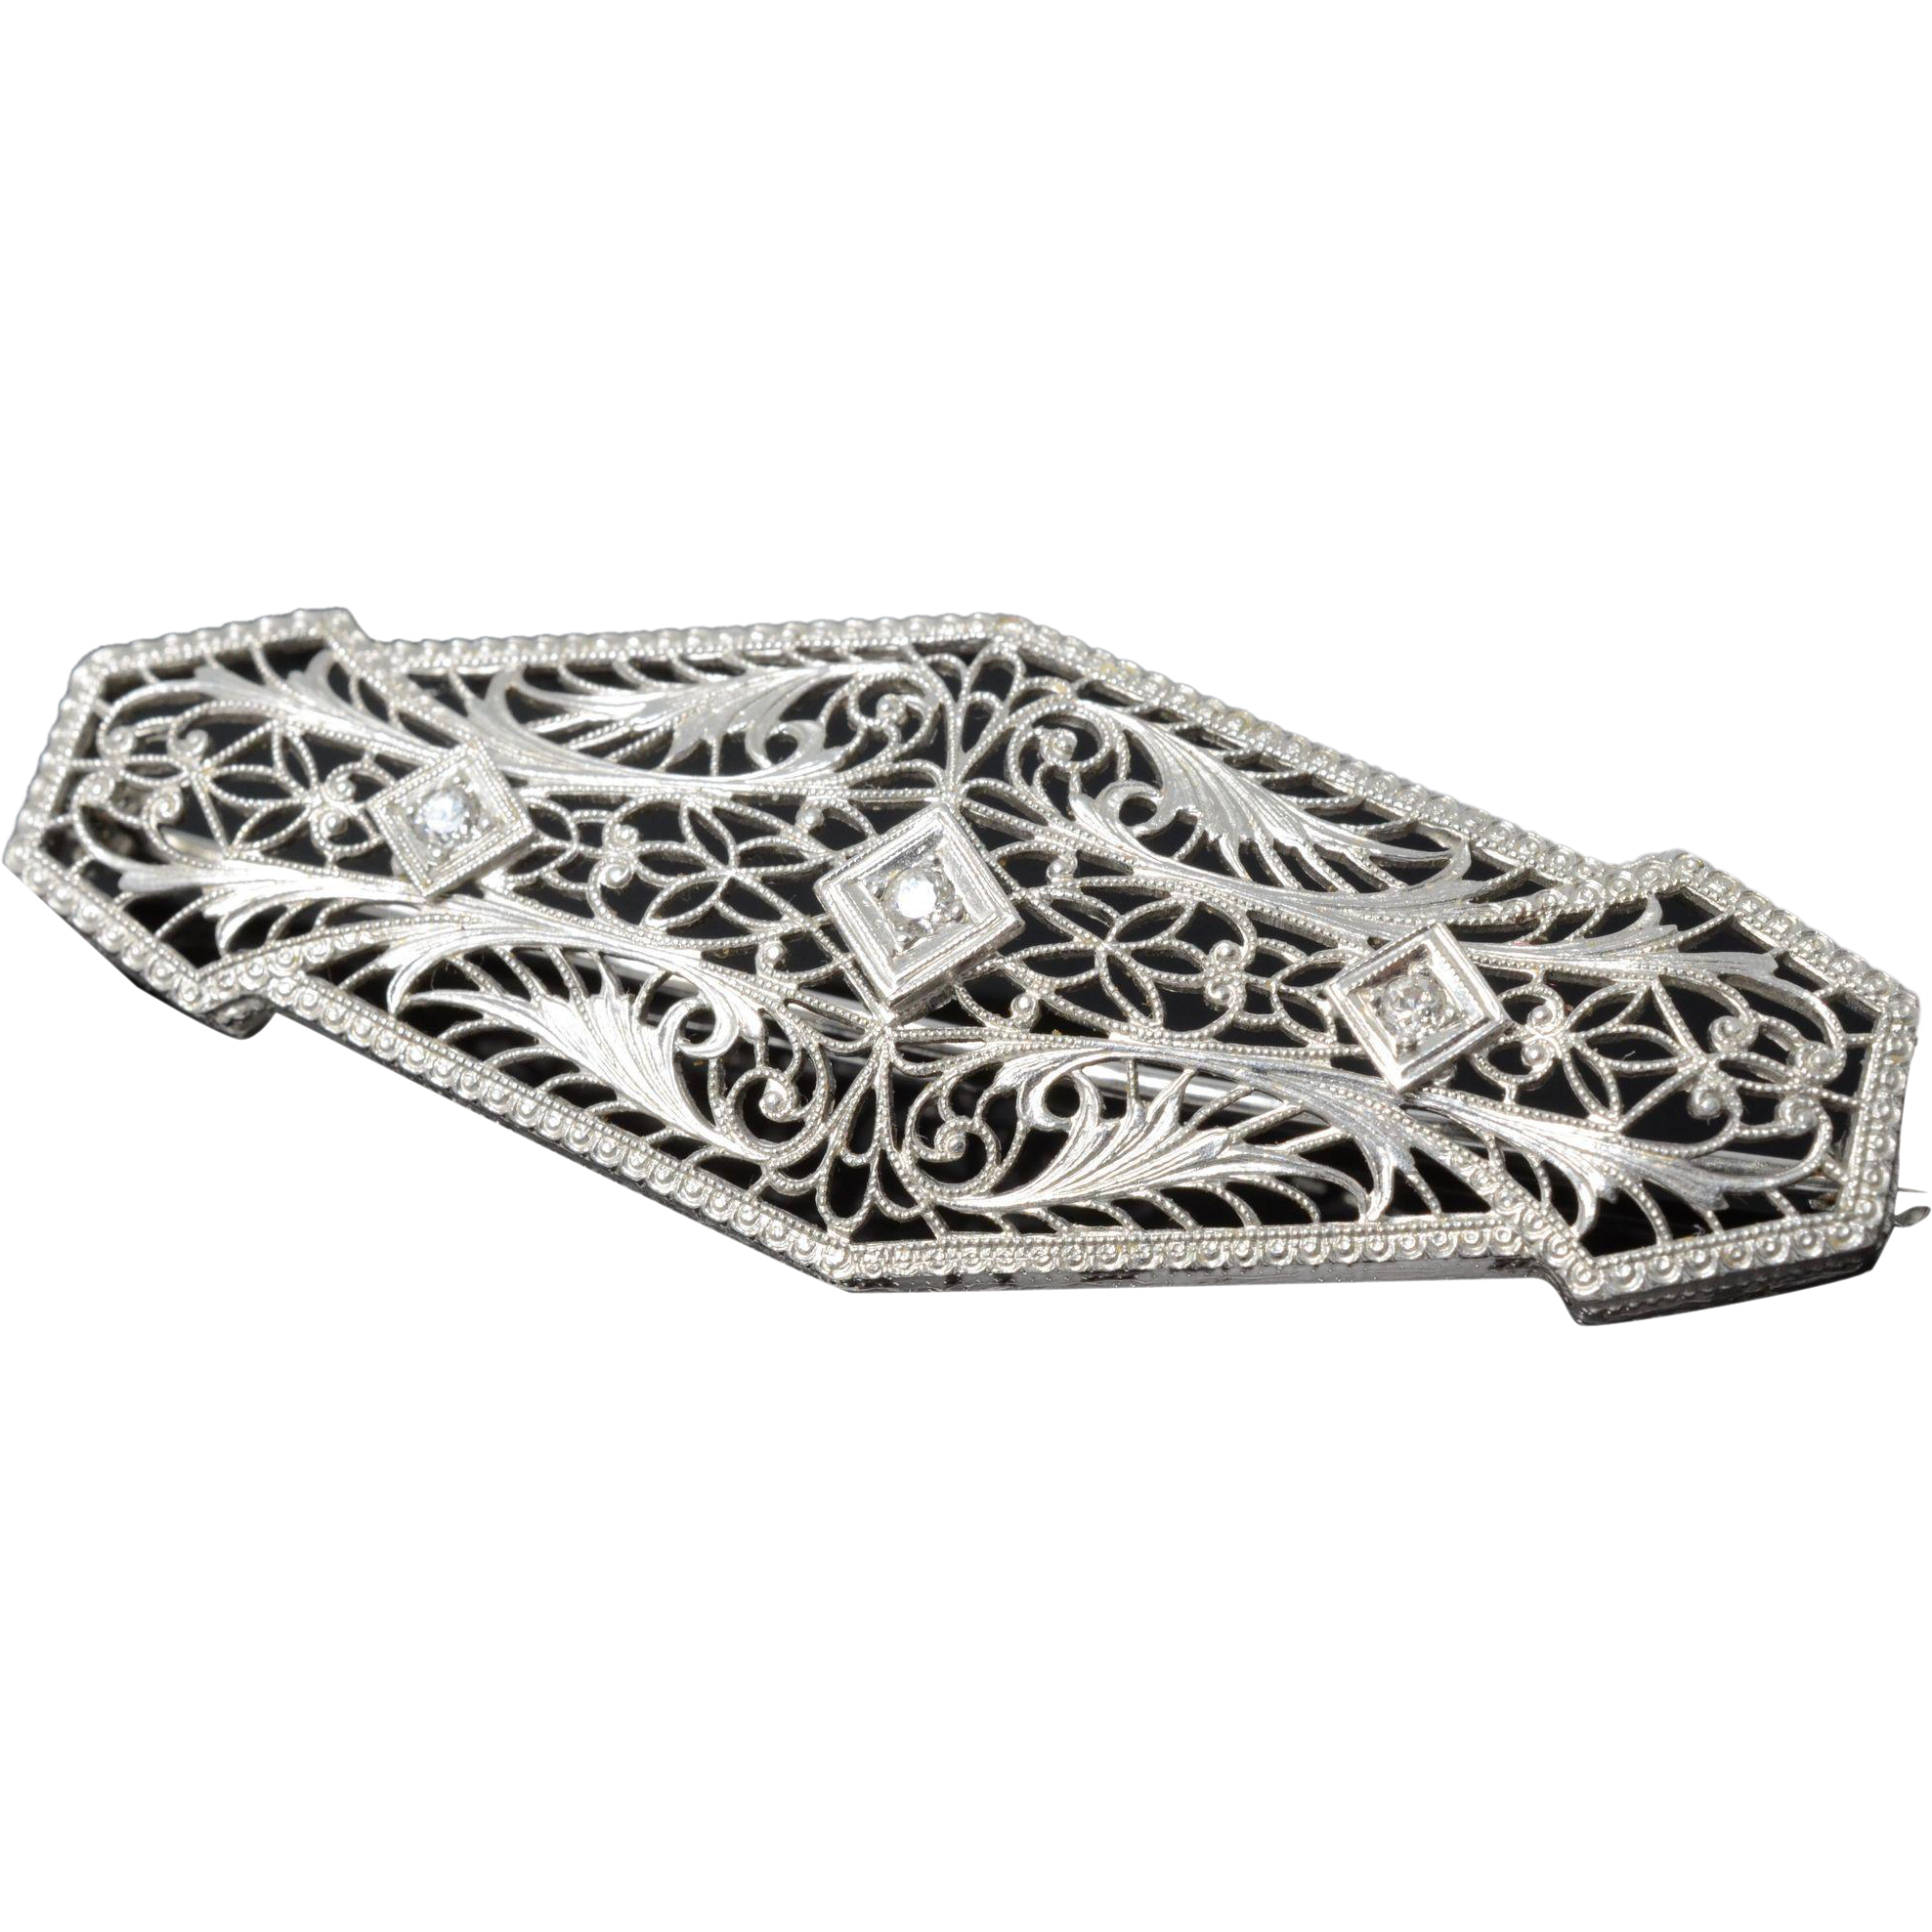 Art Deco 14k Filigree White Gold & Diamonds Brooch